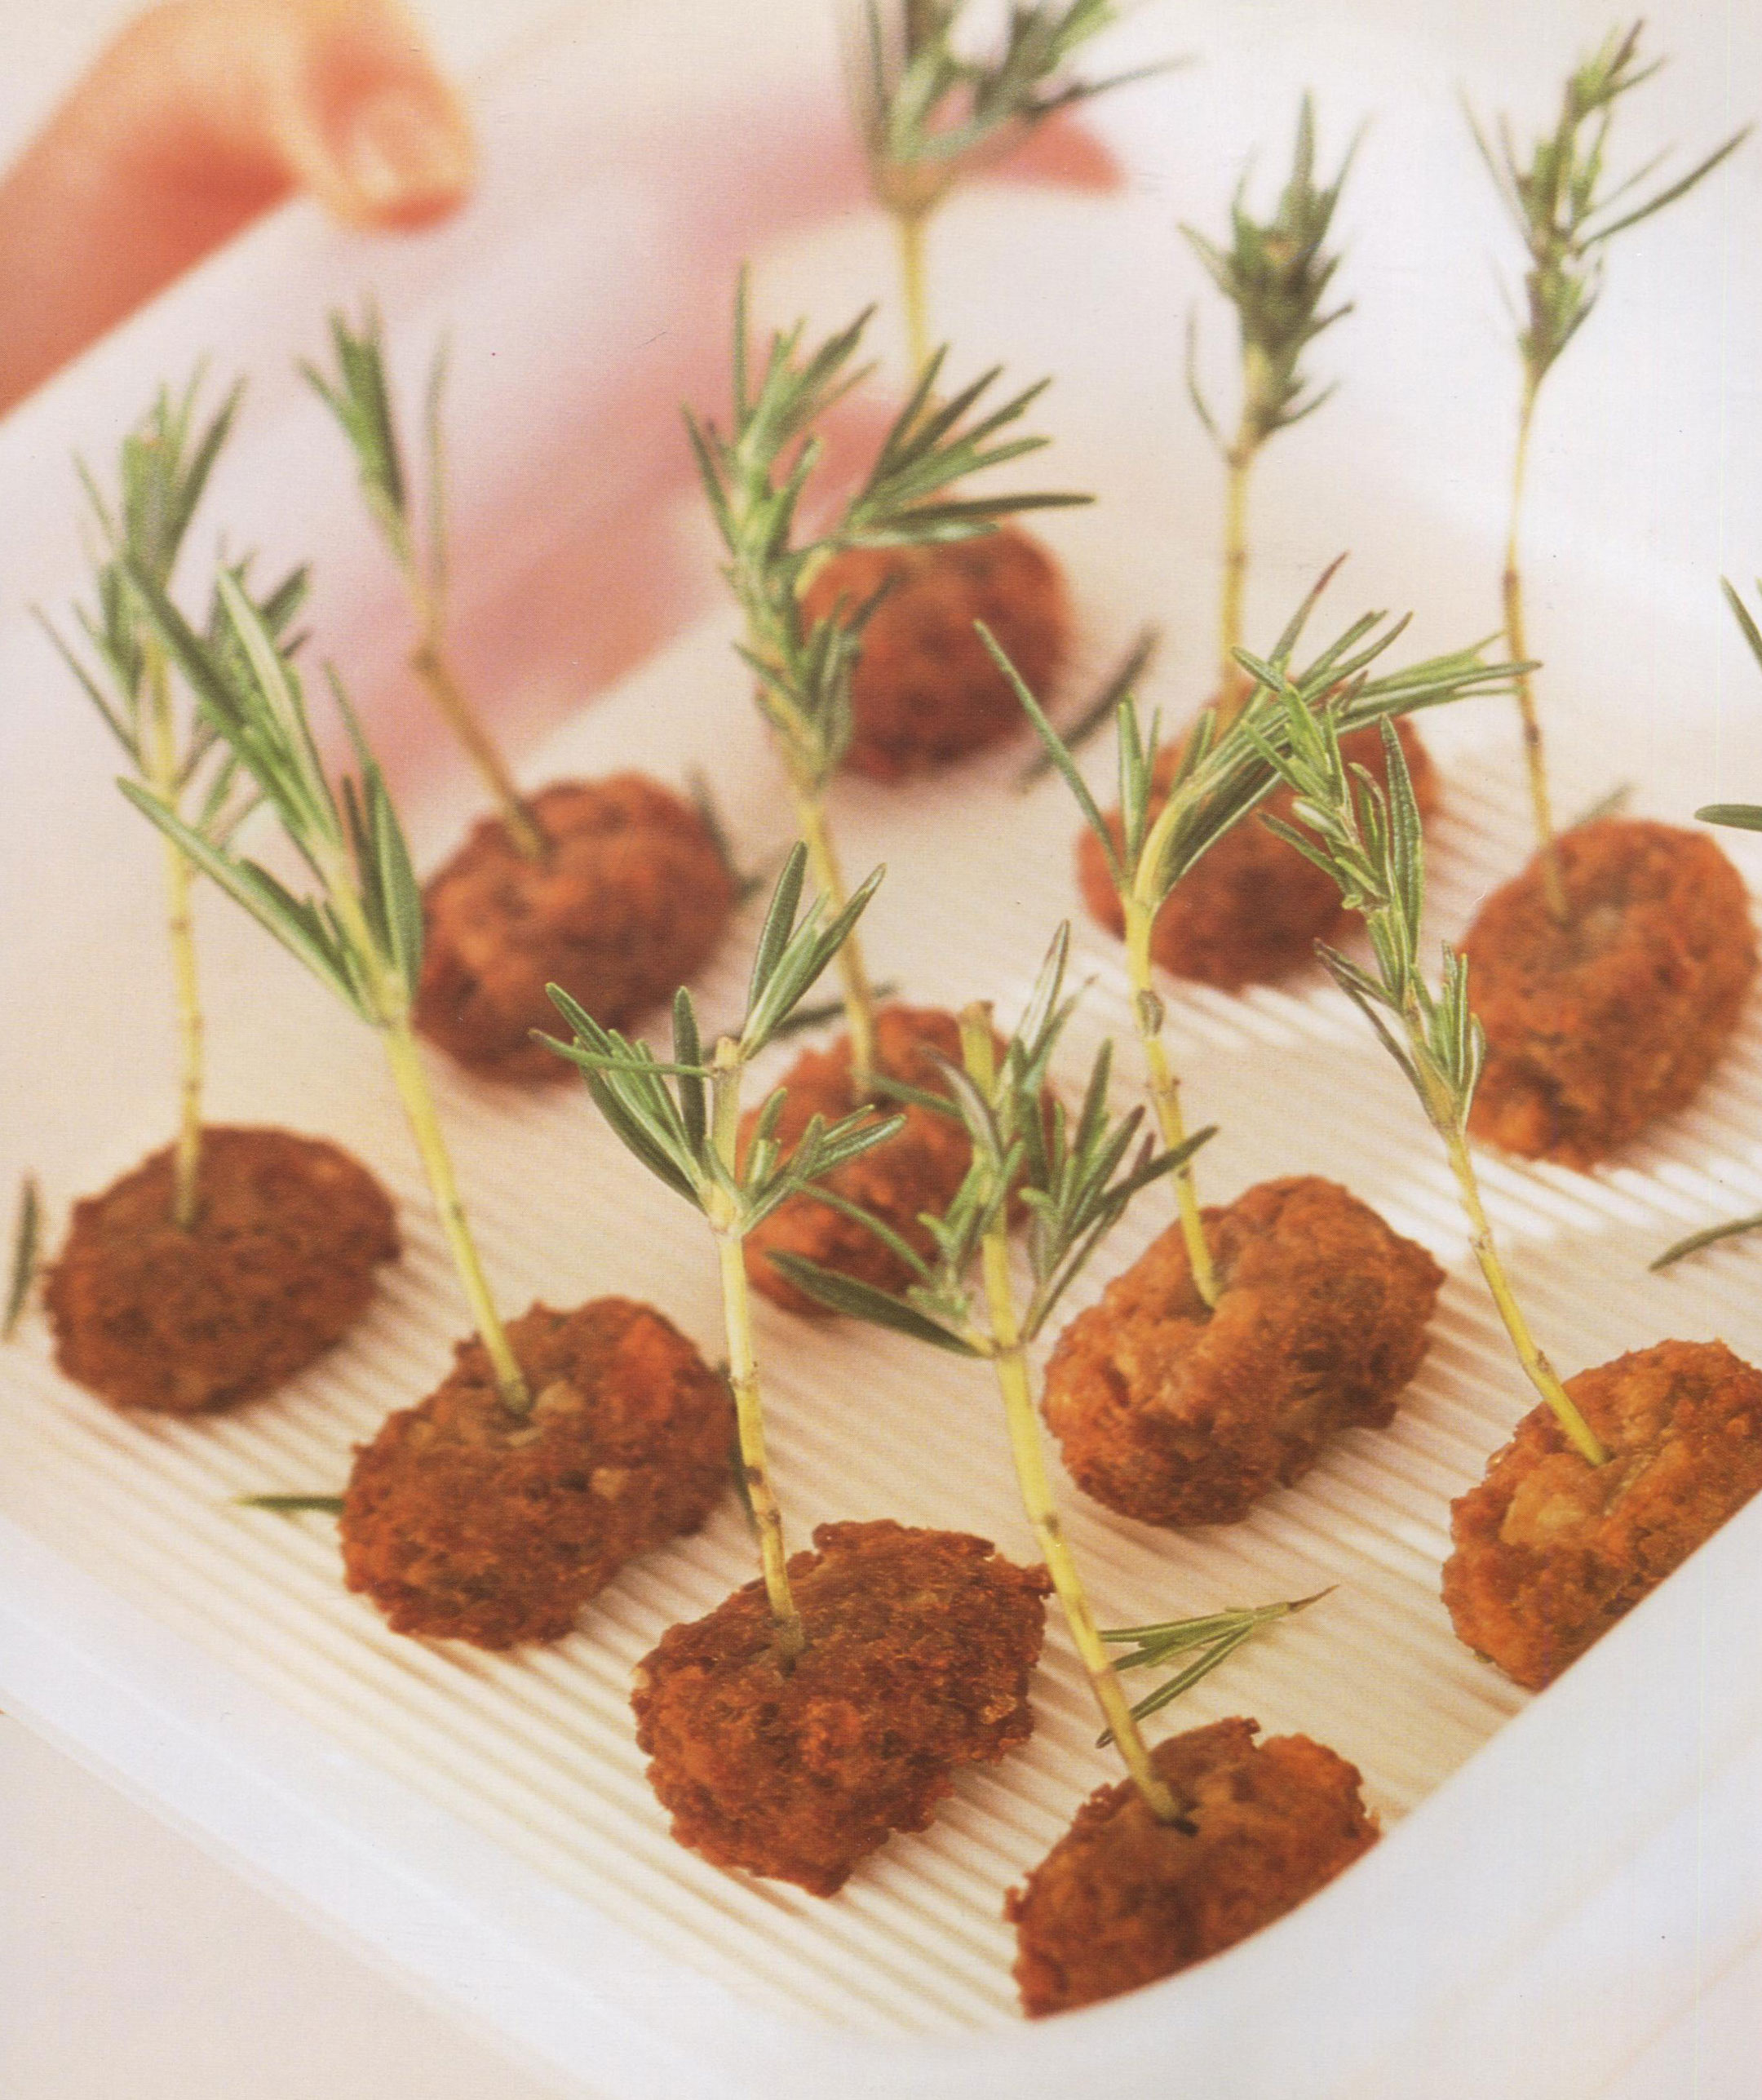 Frikadelle or Meatballs from Northern Europe for Super Bowl